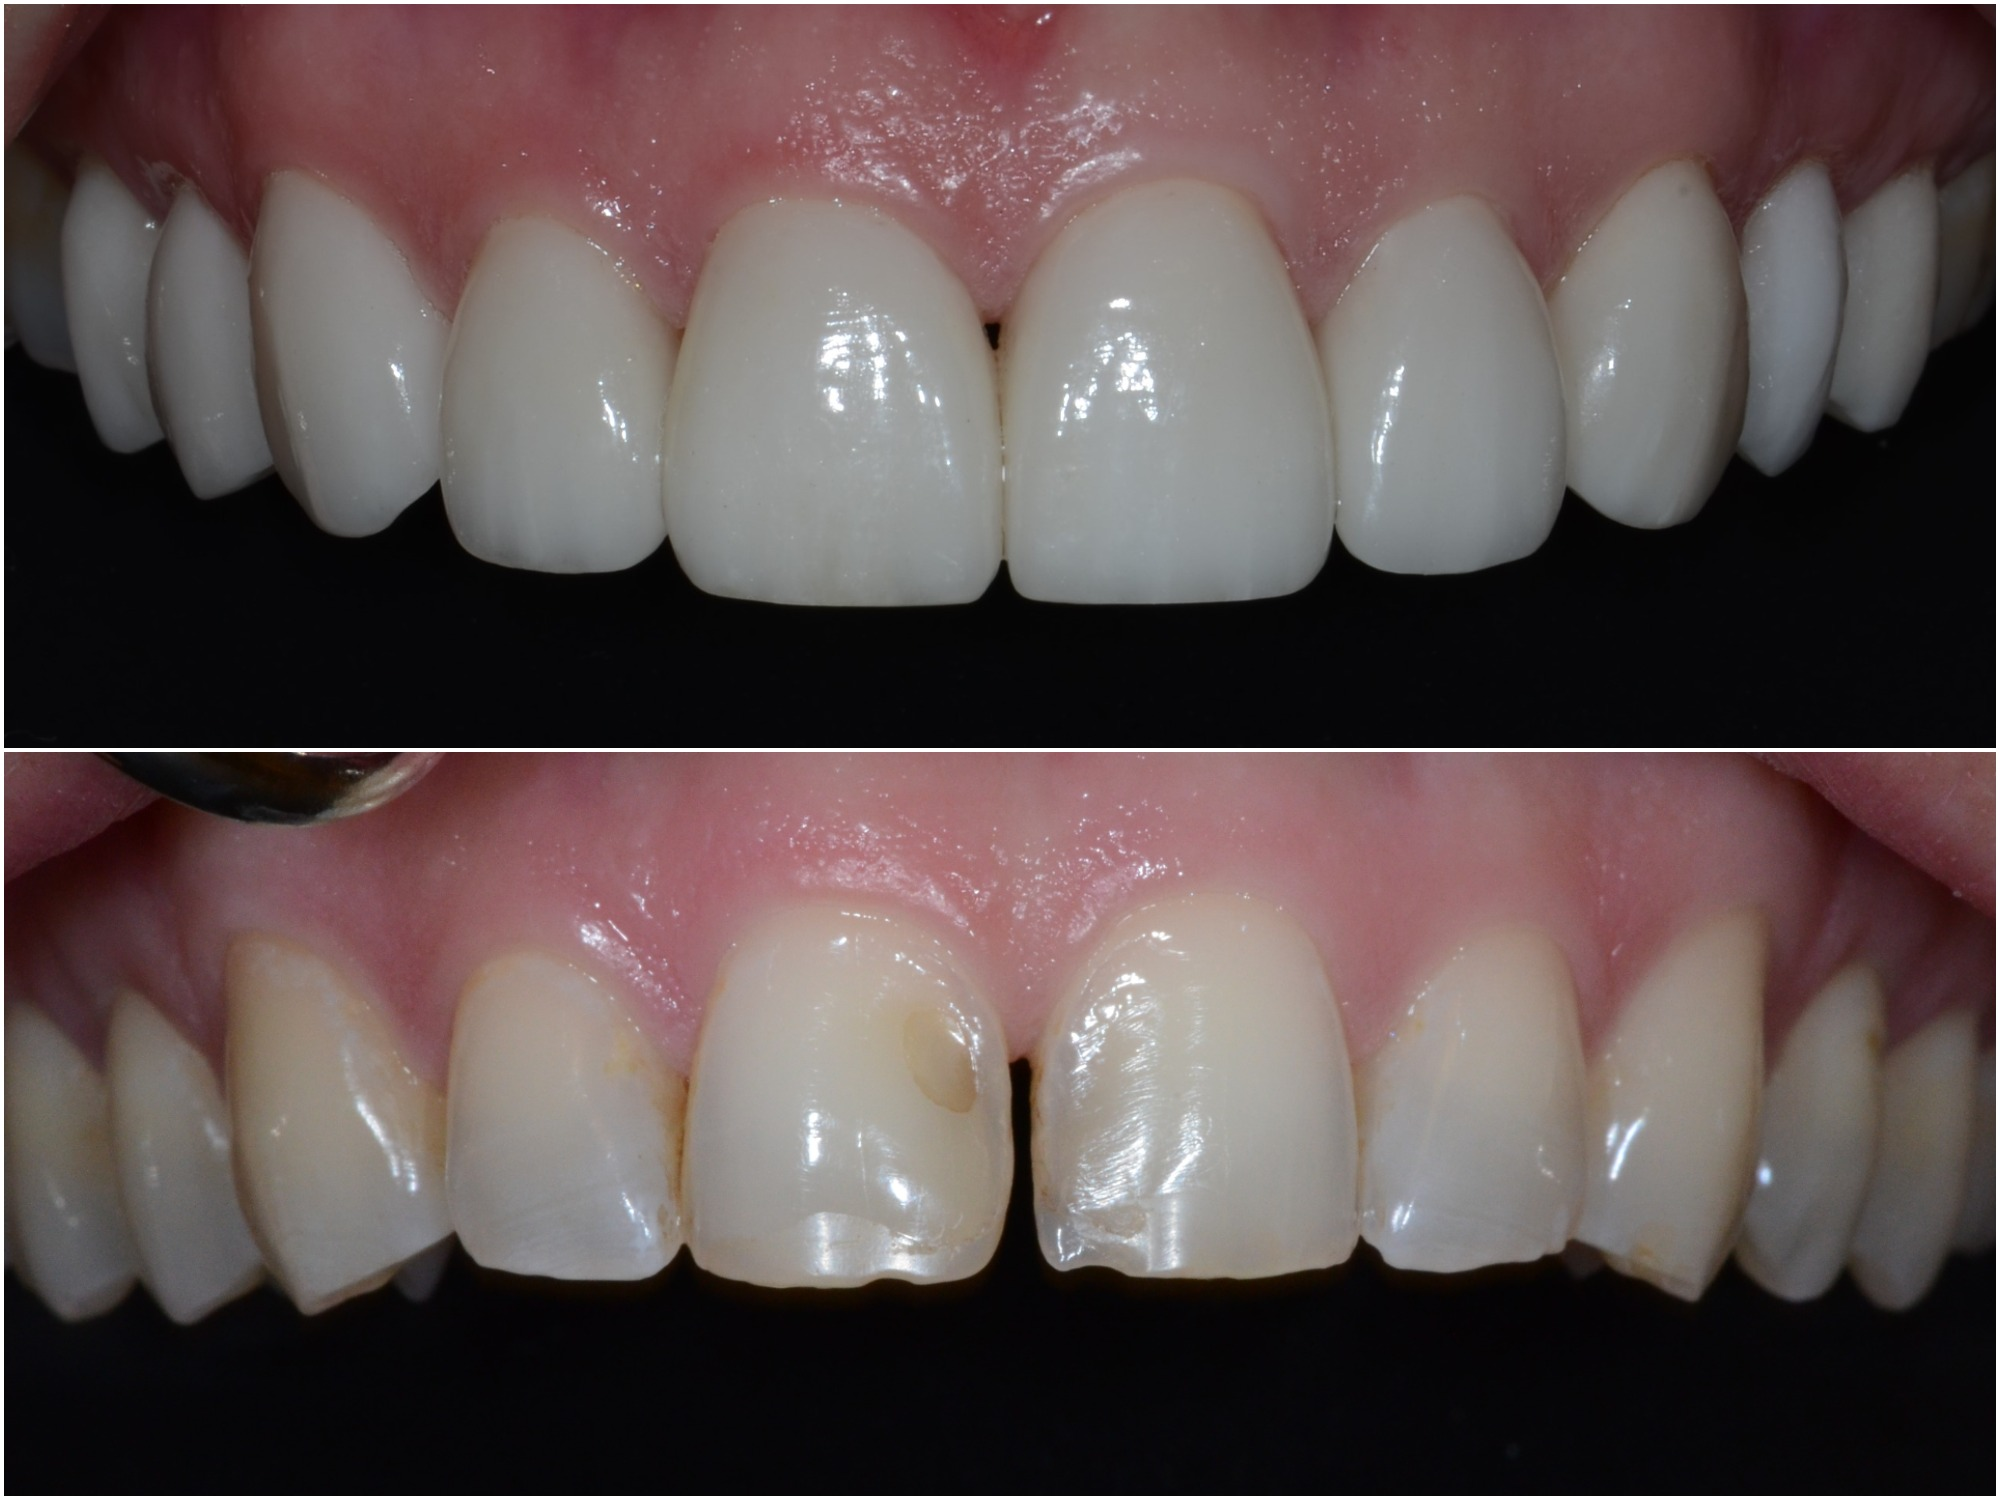 Ten dental veneers